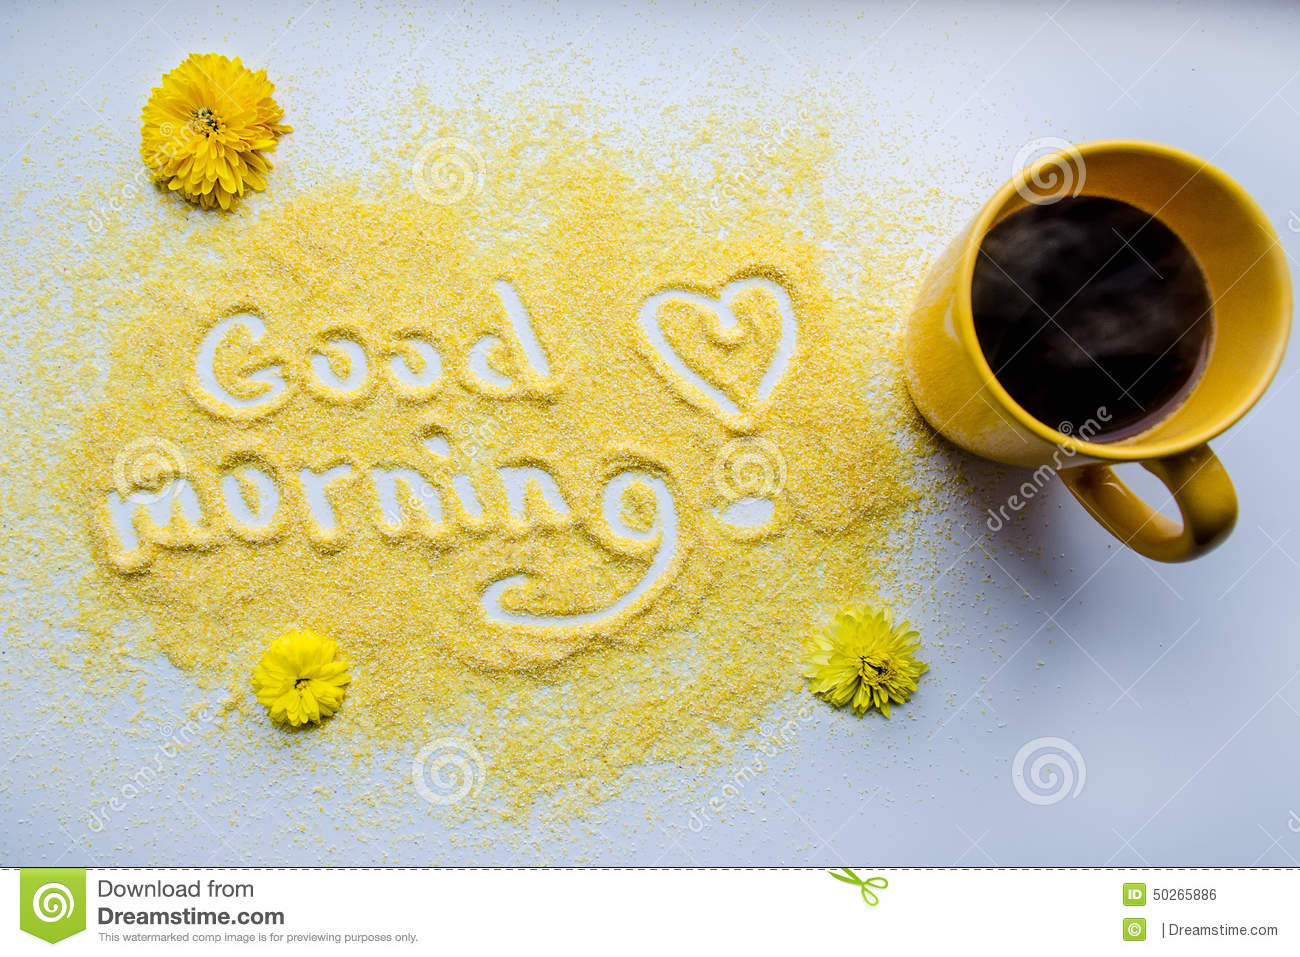 Good morning with a cup of coffee